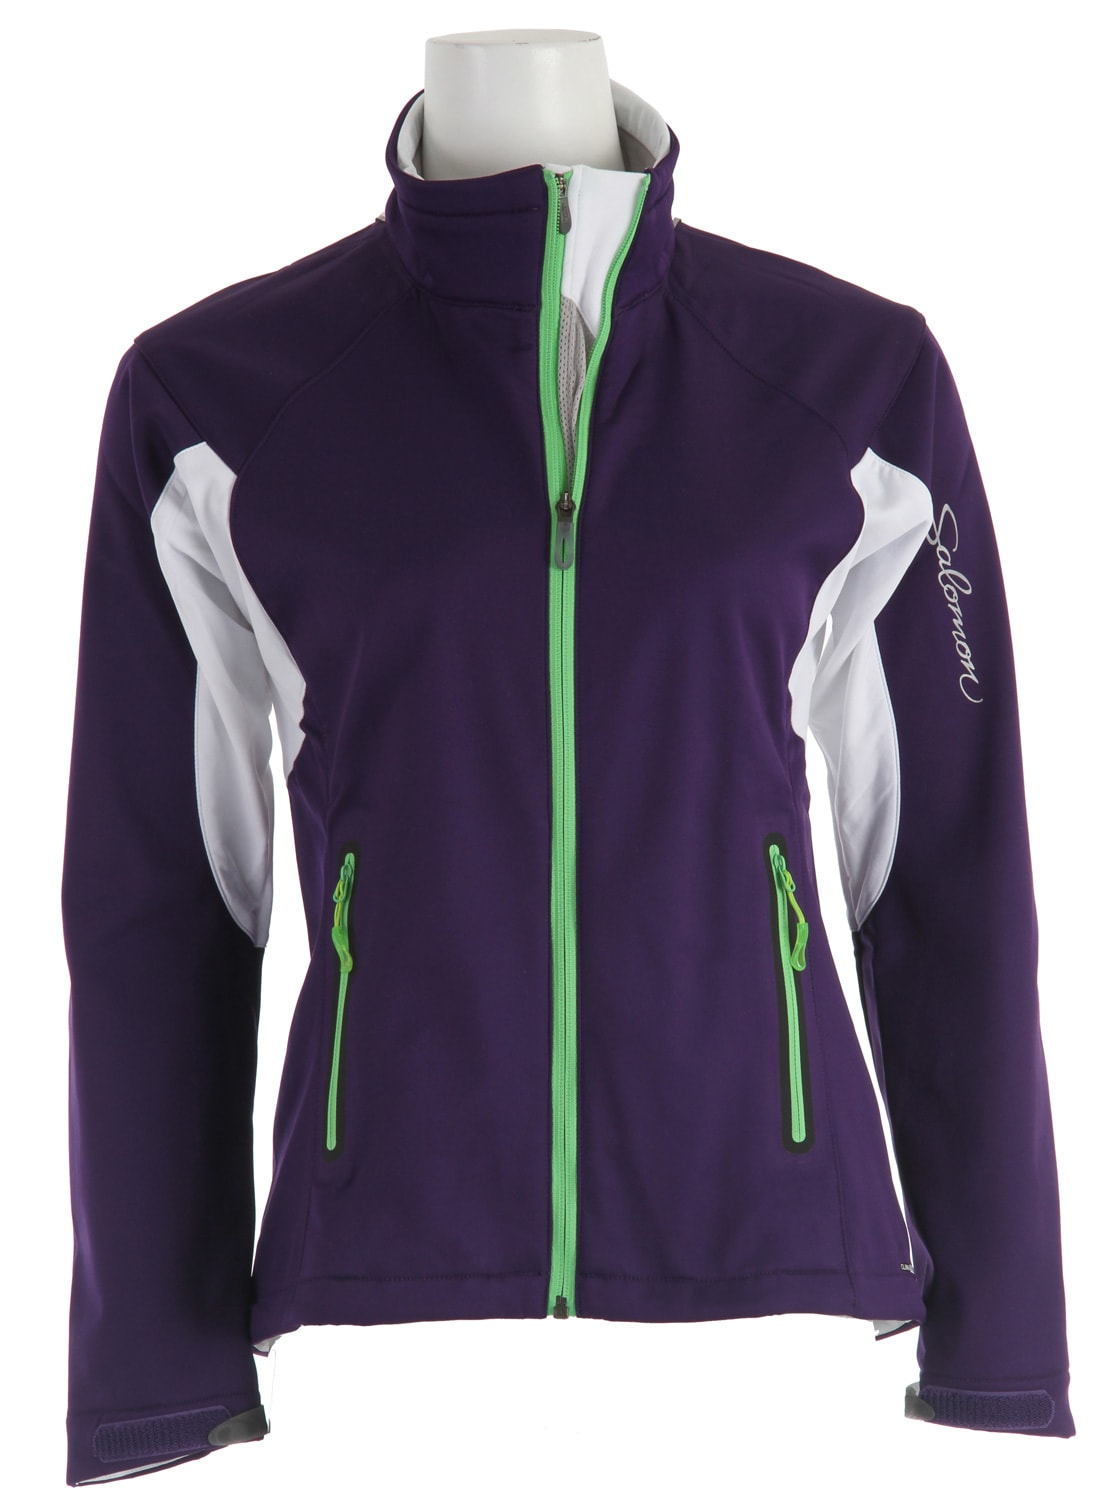 Shop for Salomon Active III Softshell Cross Country Ski Jacket Eggplant/White - Women's